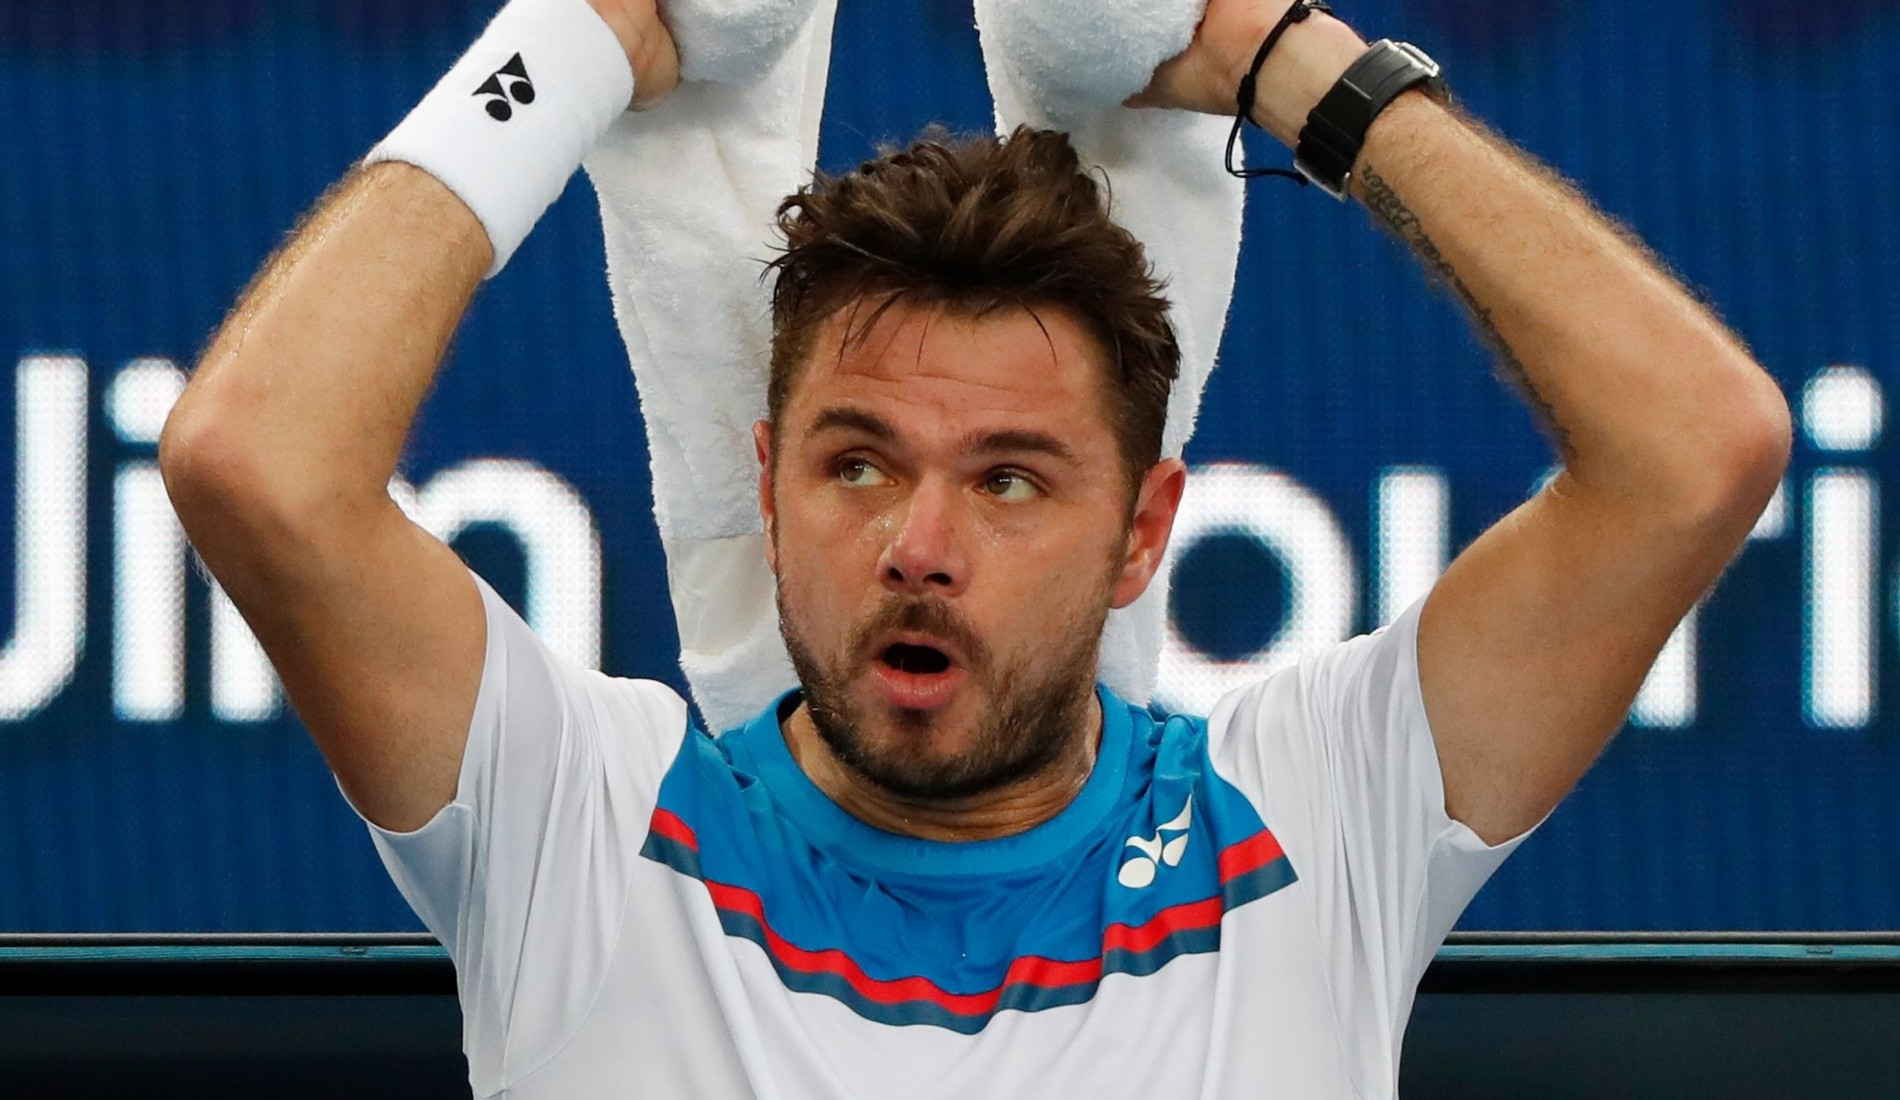 Stan Wawrinka during a change-over at the 2020 Australian Open